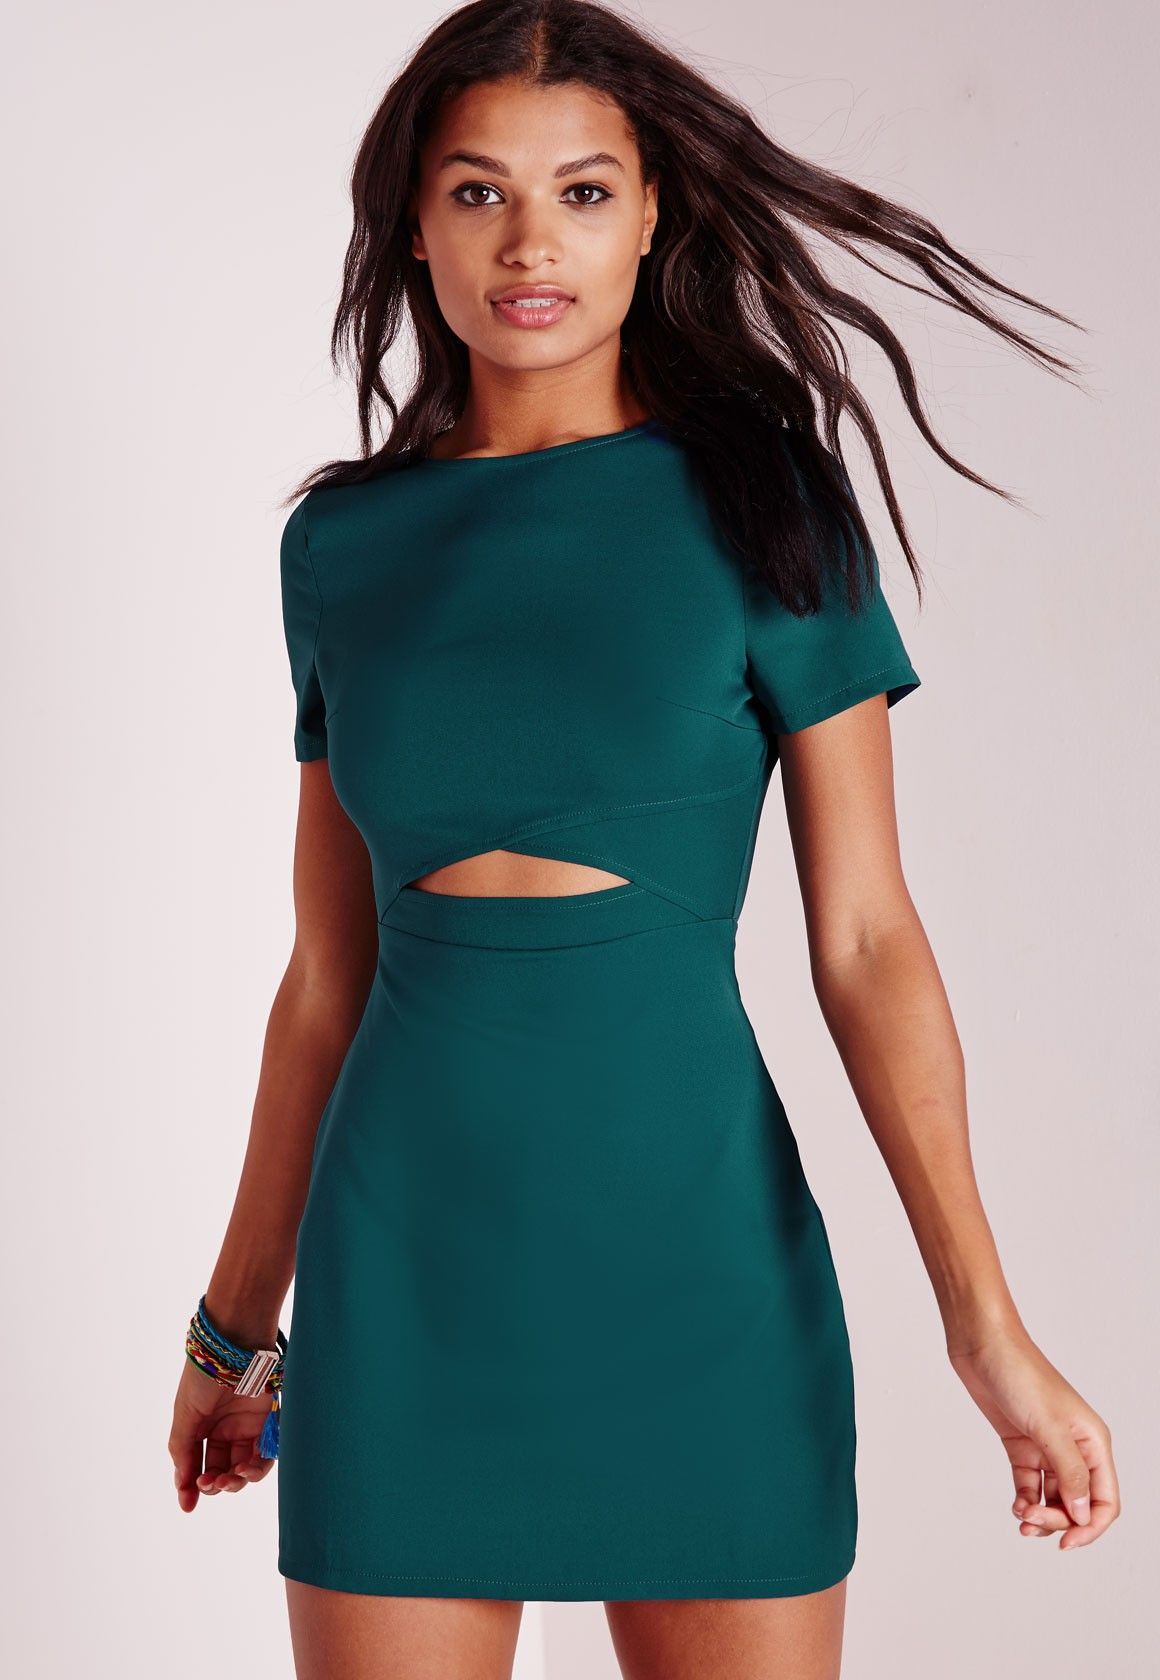 f094d4cbee83a Missguided - Cross Front Cut Out Shift Dress Teal | Fashion ...